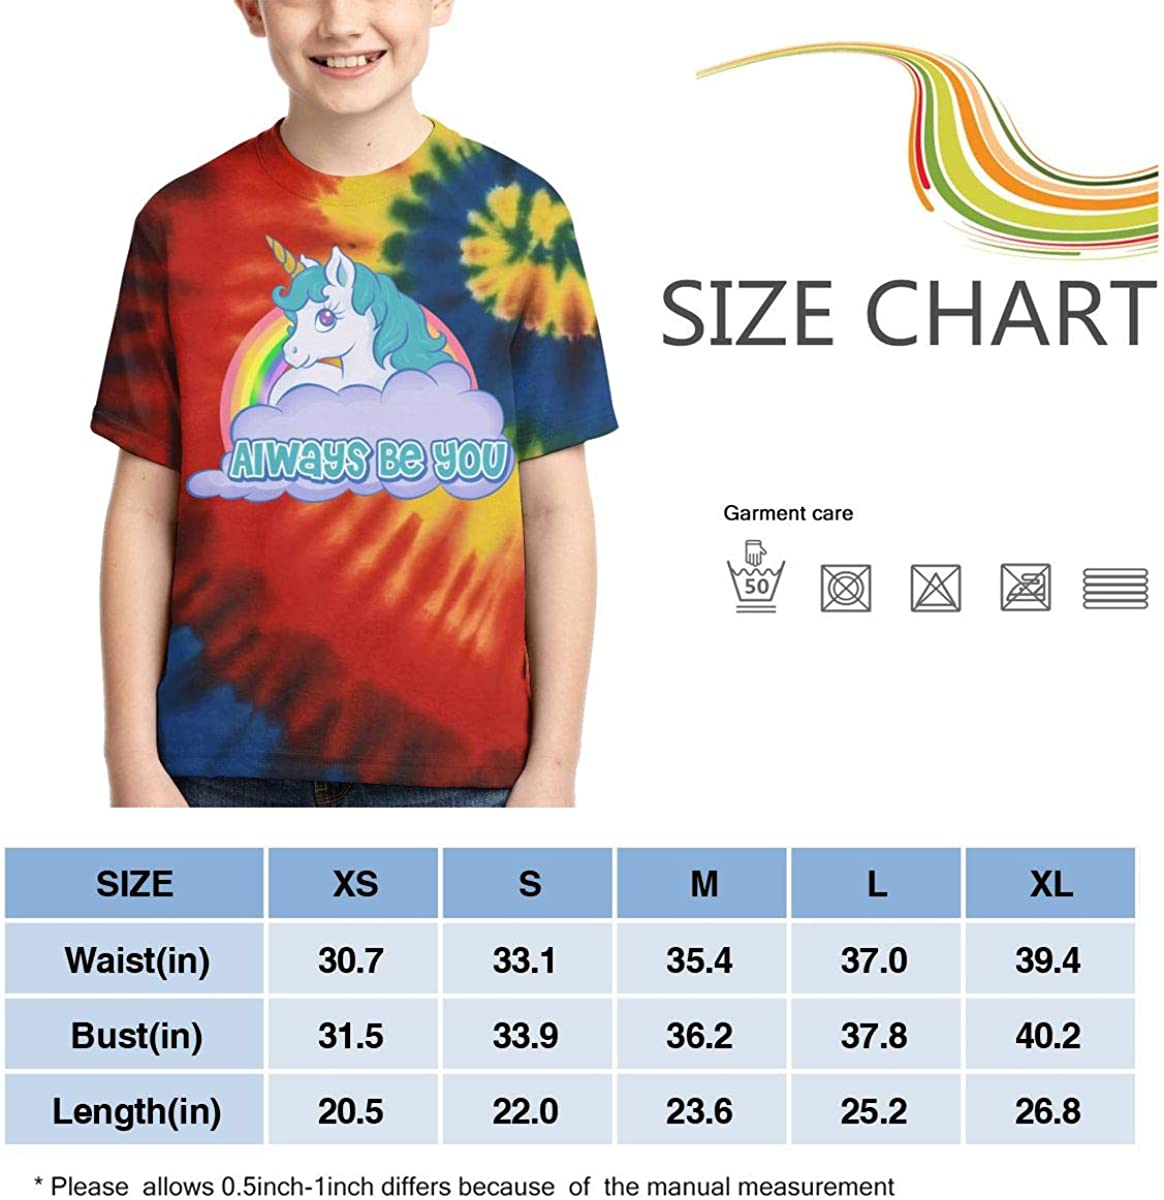 AMODECO Always BE You Unicorn 3D Printed Tee T-Shirt for Youth Teenager Boys Girls